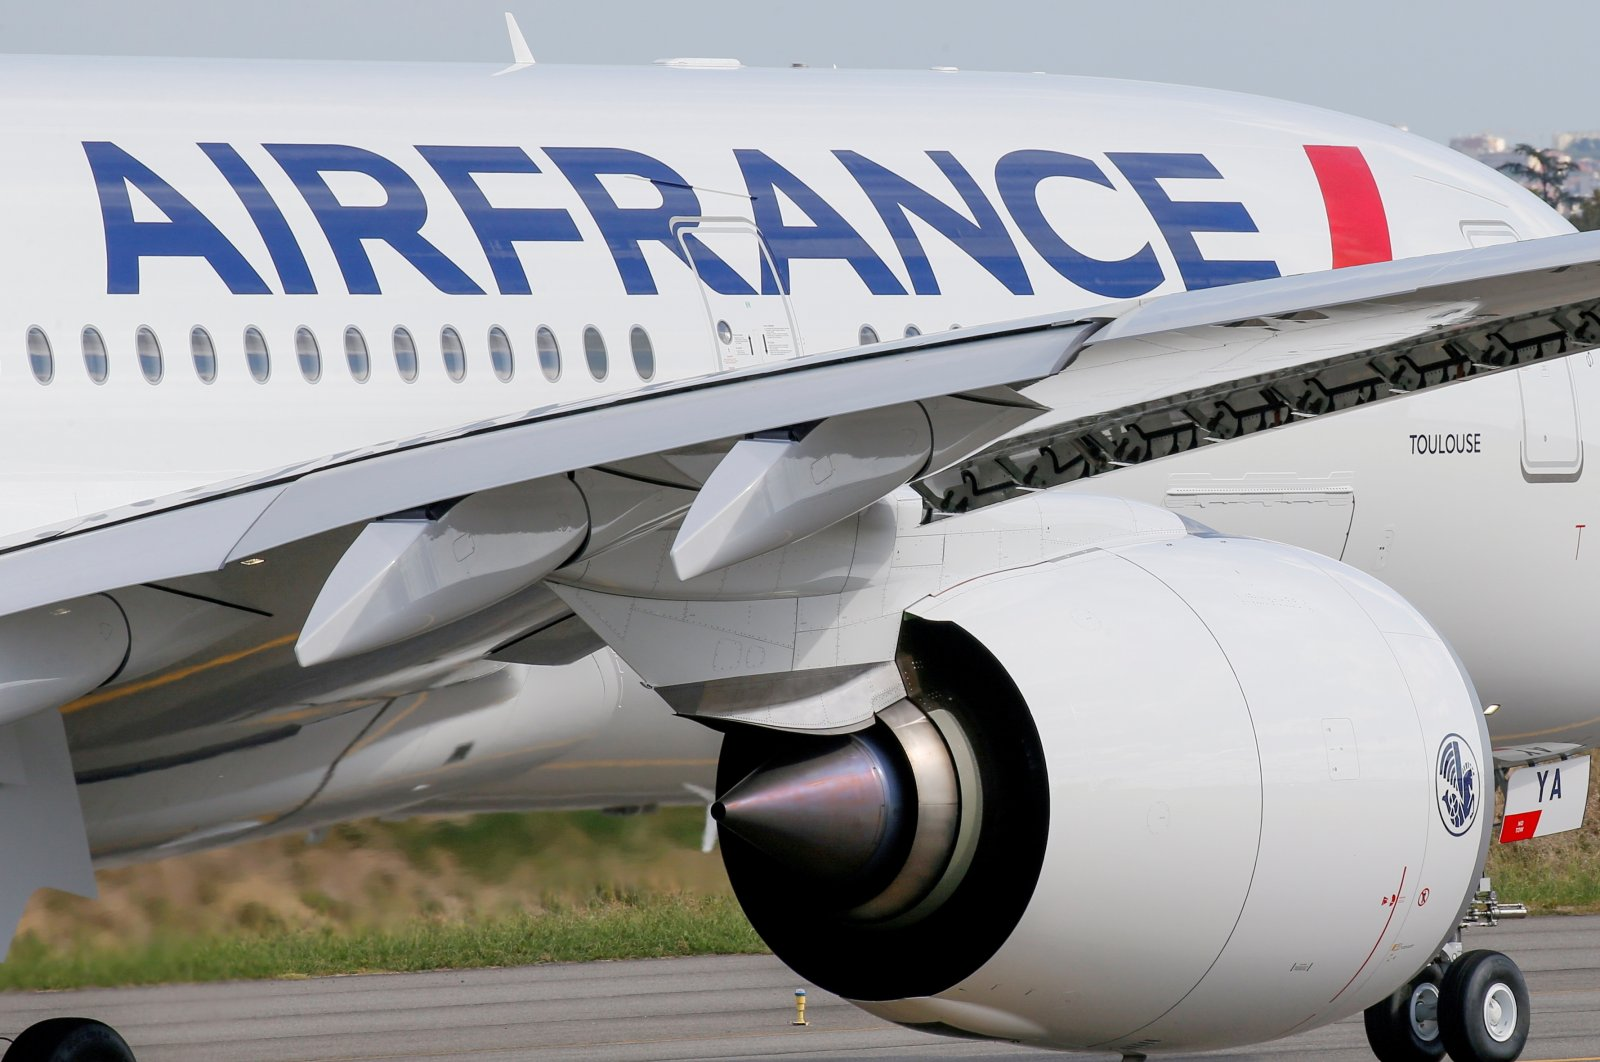 The first Air France Airbus A350 prepares to take off after a ceremony at the aircraft builder's headquarters in Colomiers near Toulouse, France, Sept. 27, 2019. (Reuters Photo)